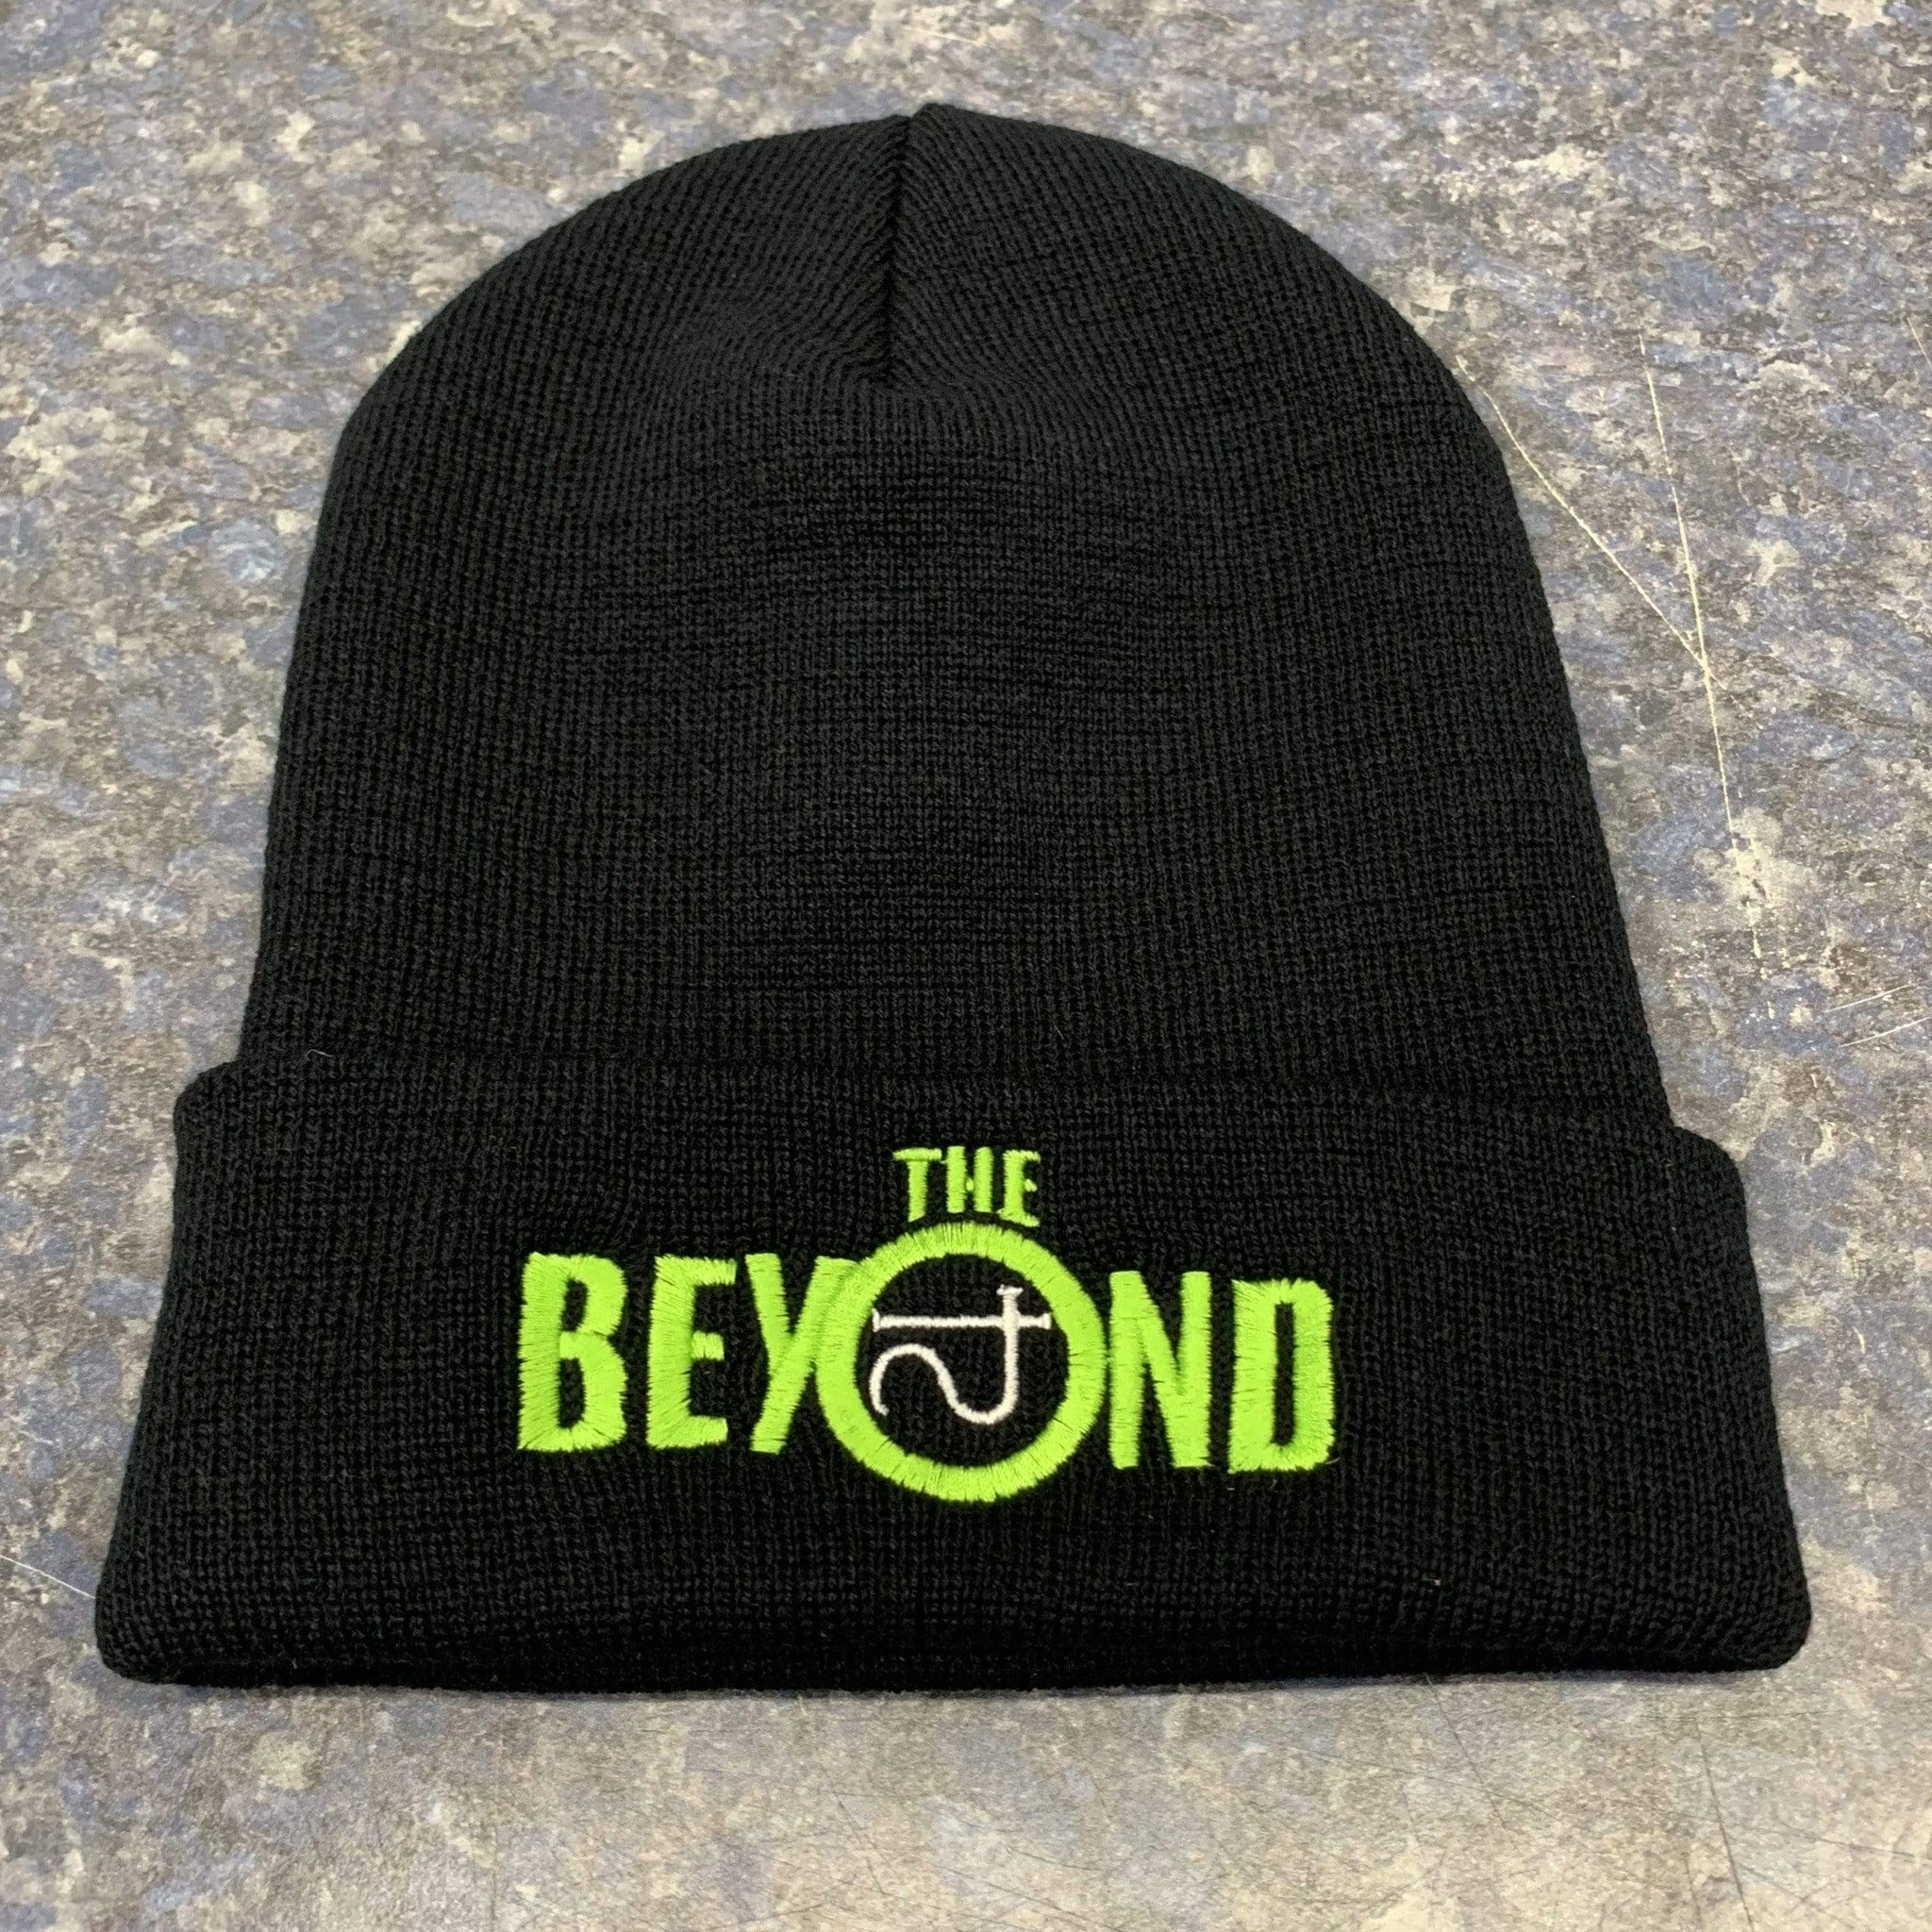 PATAC Clothing The Beyond - Eibon Logo Winter Beanie